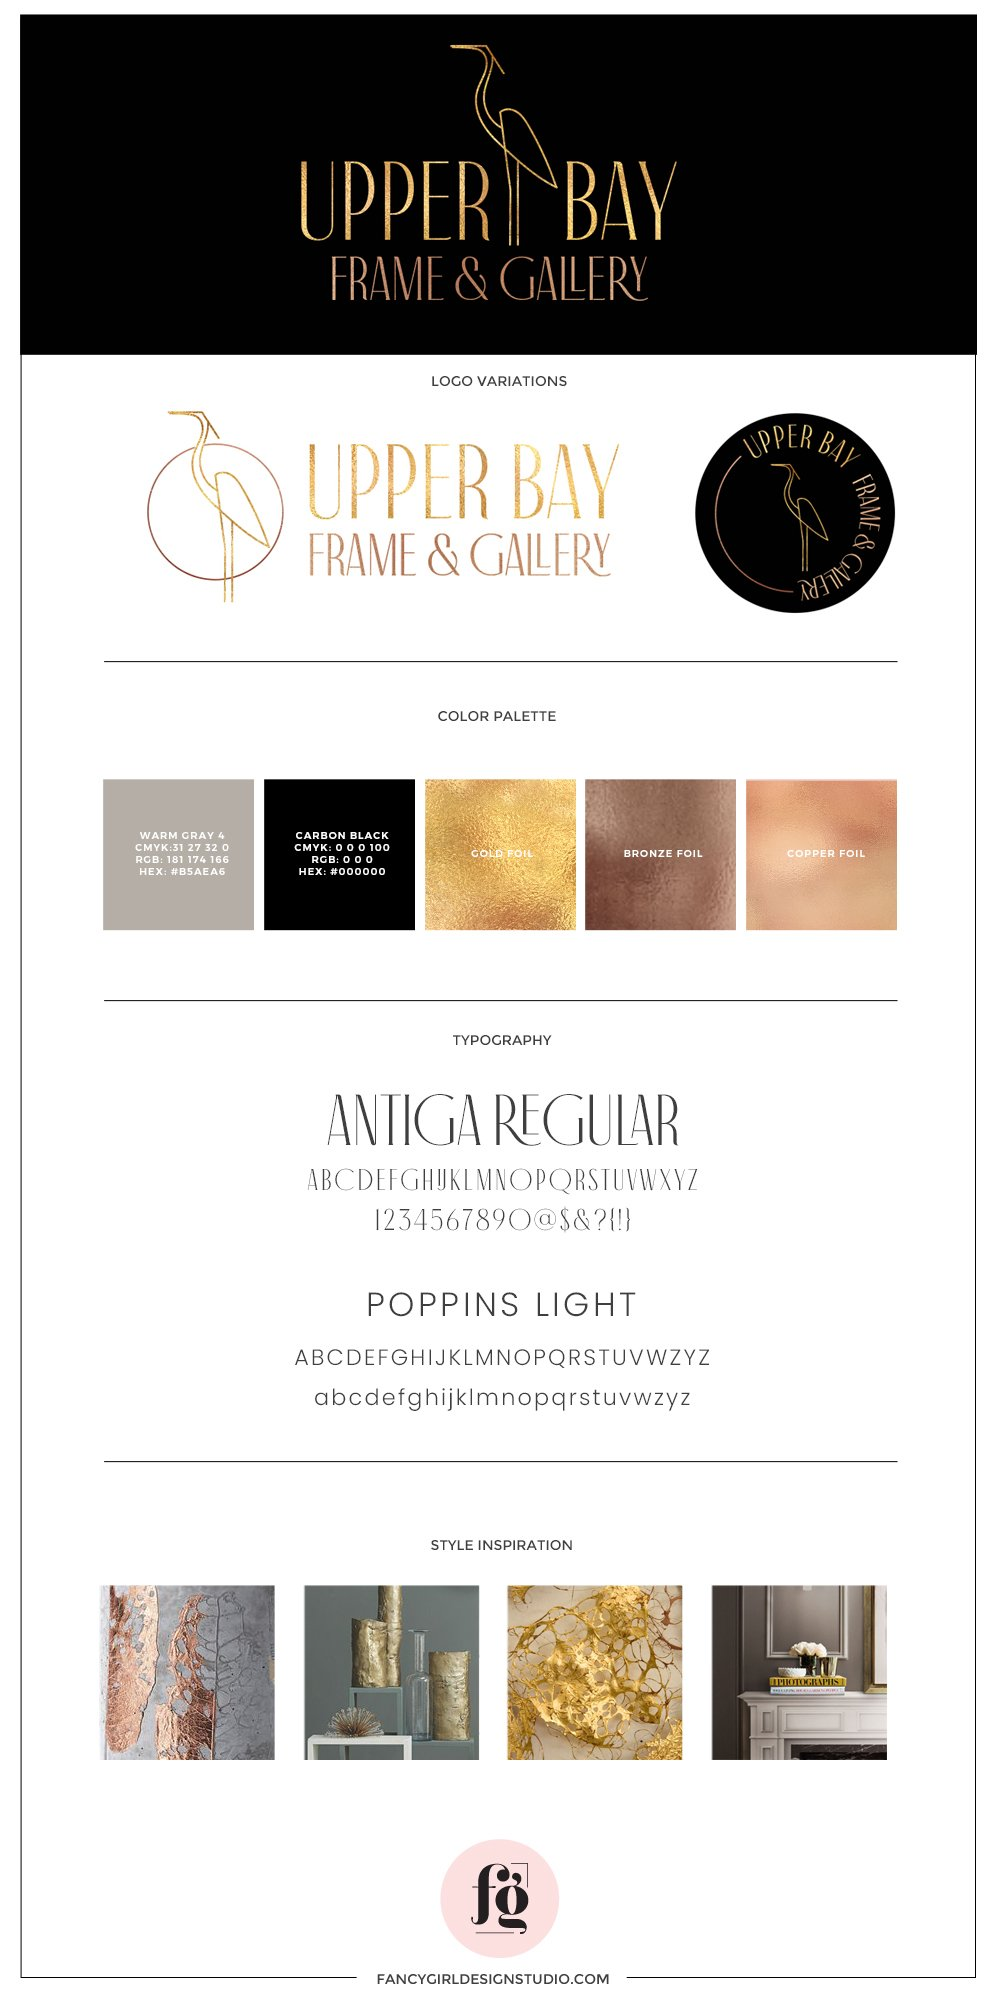 brand guide for UpperBay Frame & Gallery with a mix of metallics and neurals